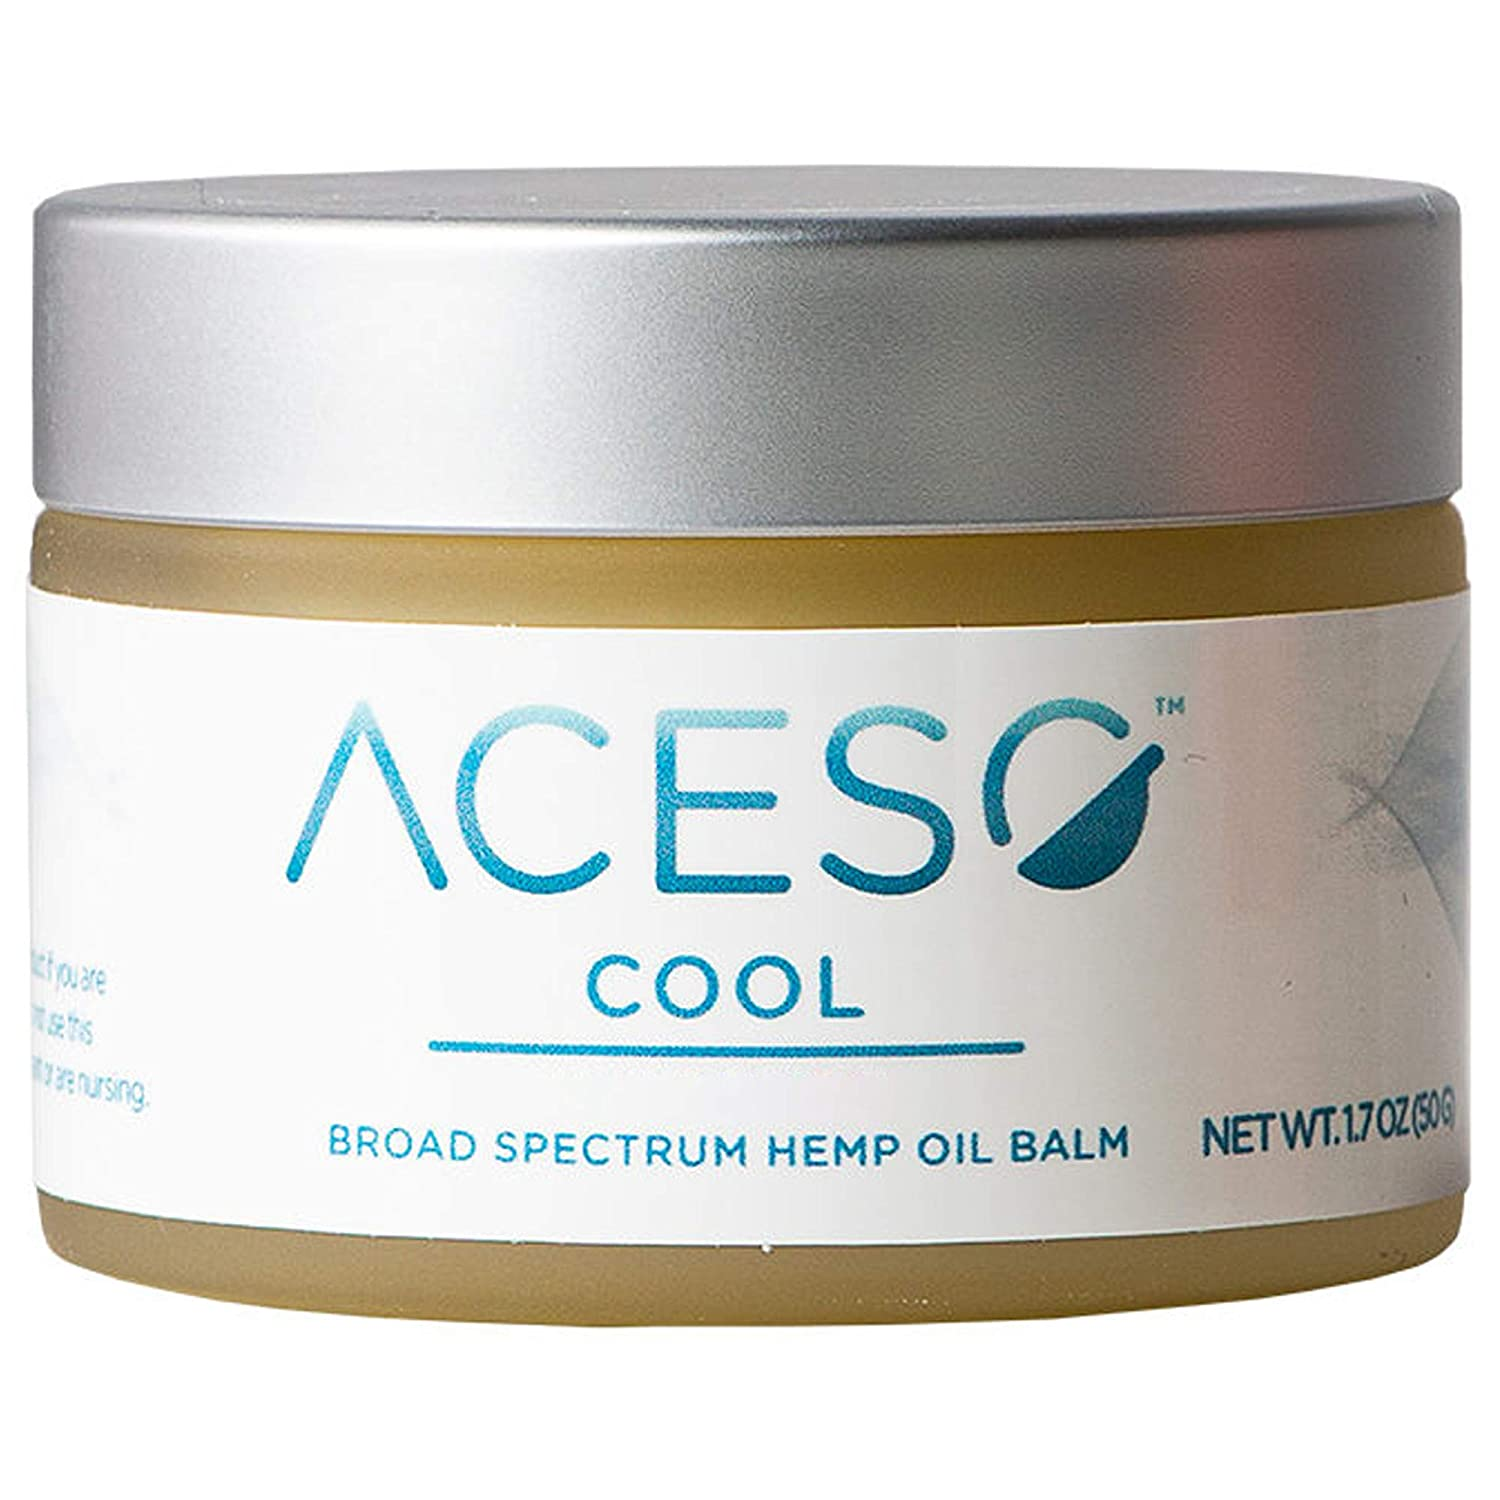 ACESO Cool Hemp Oil Balm, Pleasant Cooling Sensation on The Skin with Over 20 Essential Oils, 1.7 Ounces, 50 Grams